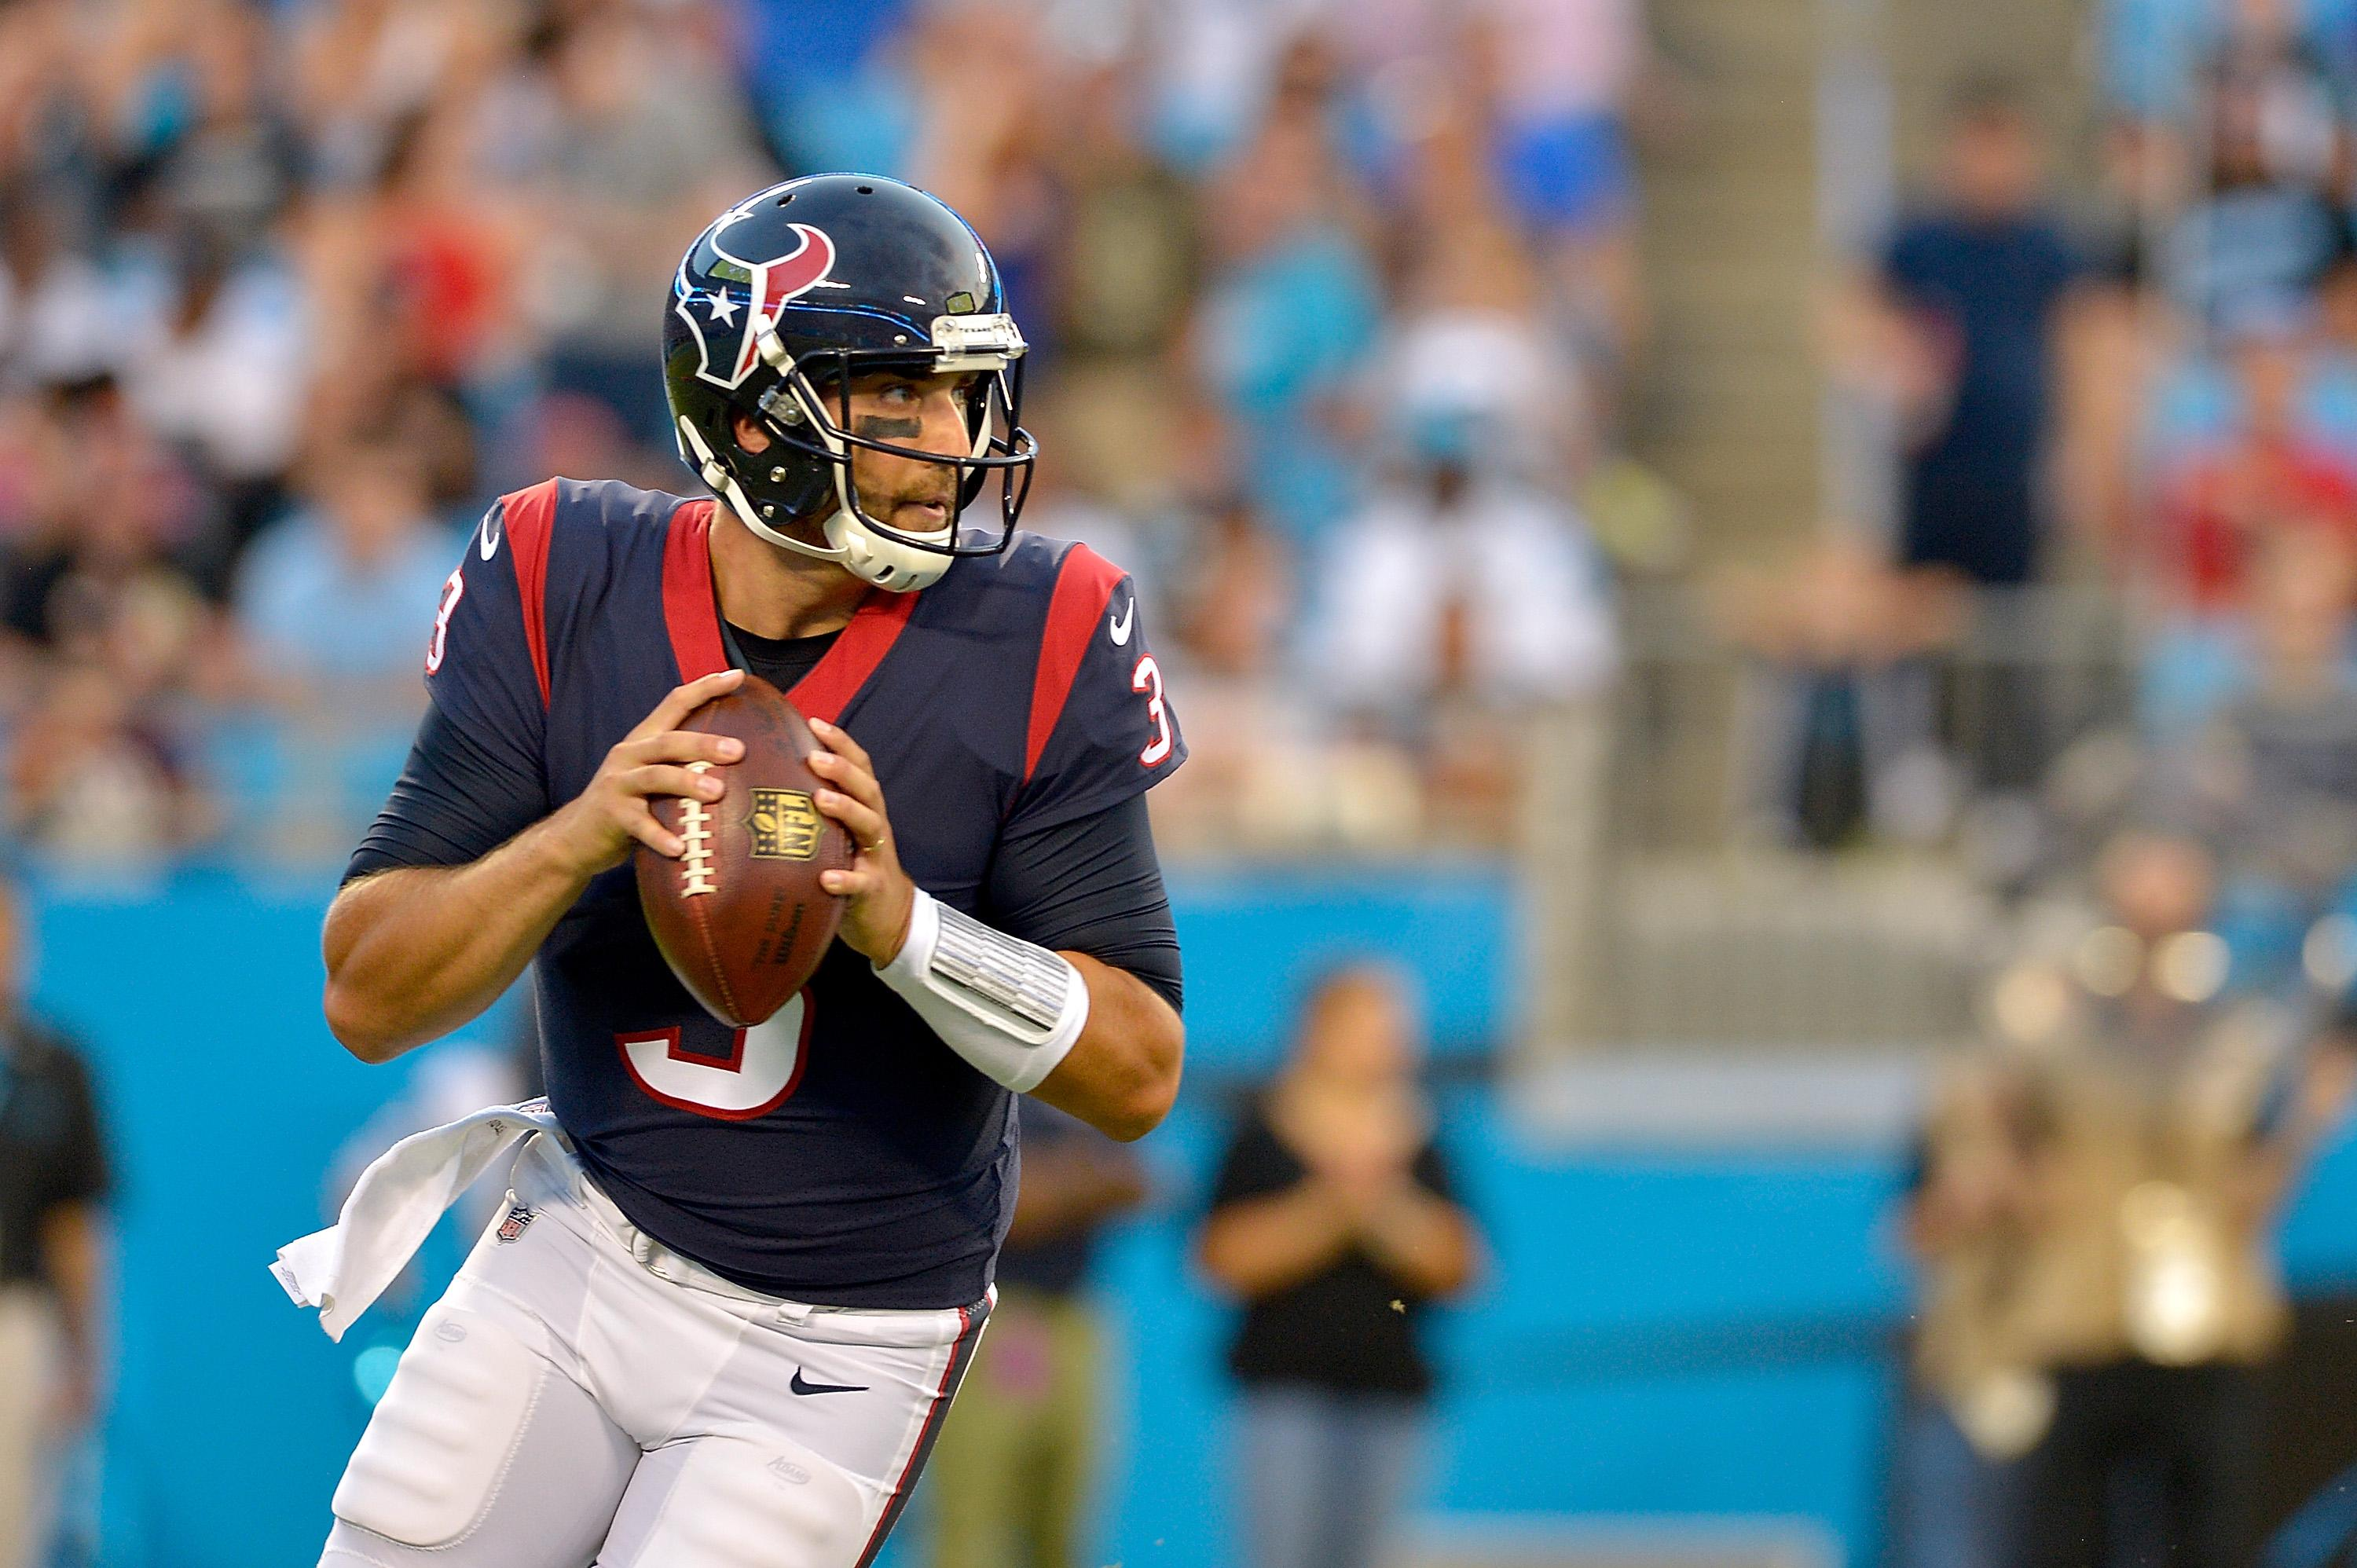 Tom Savage seen shaking after crushing hit vs. 49ers